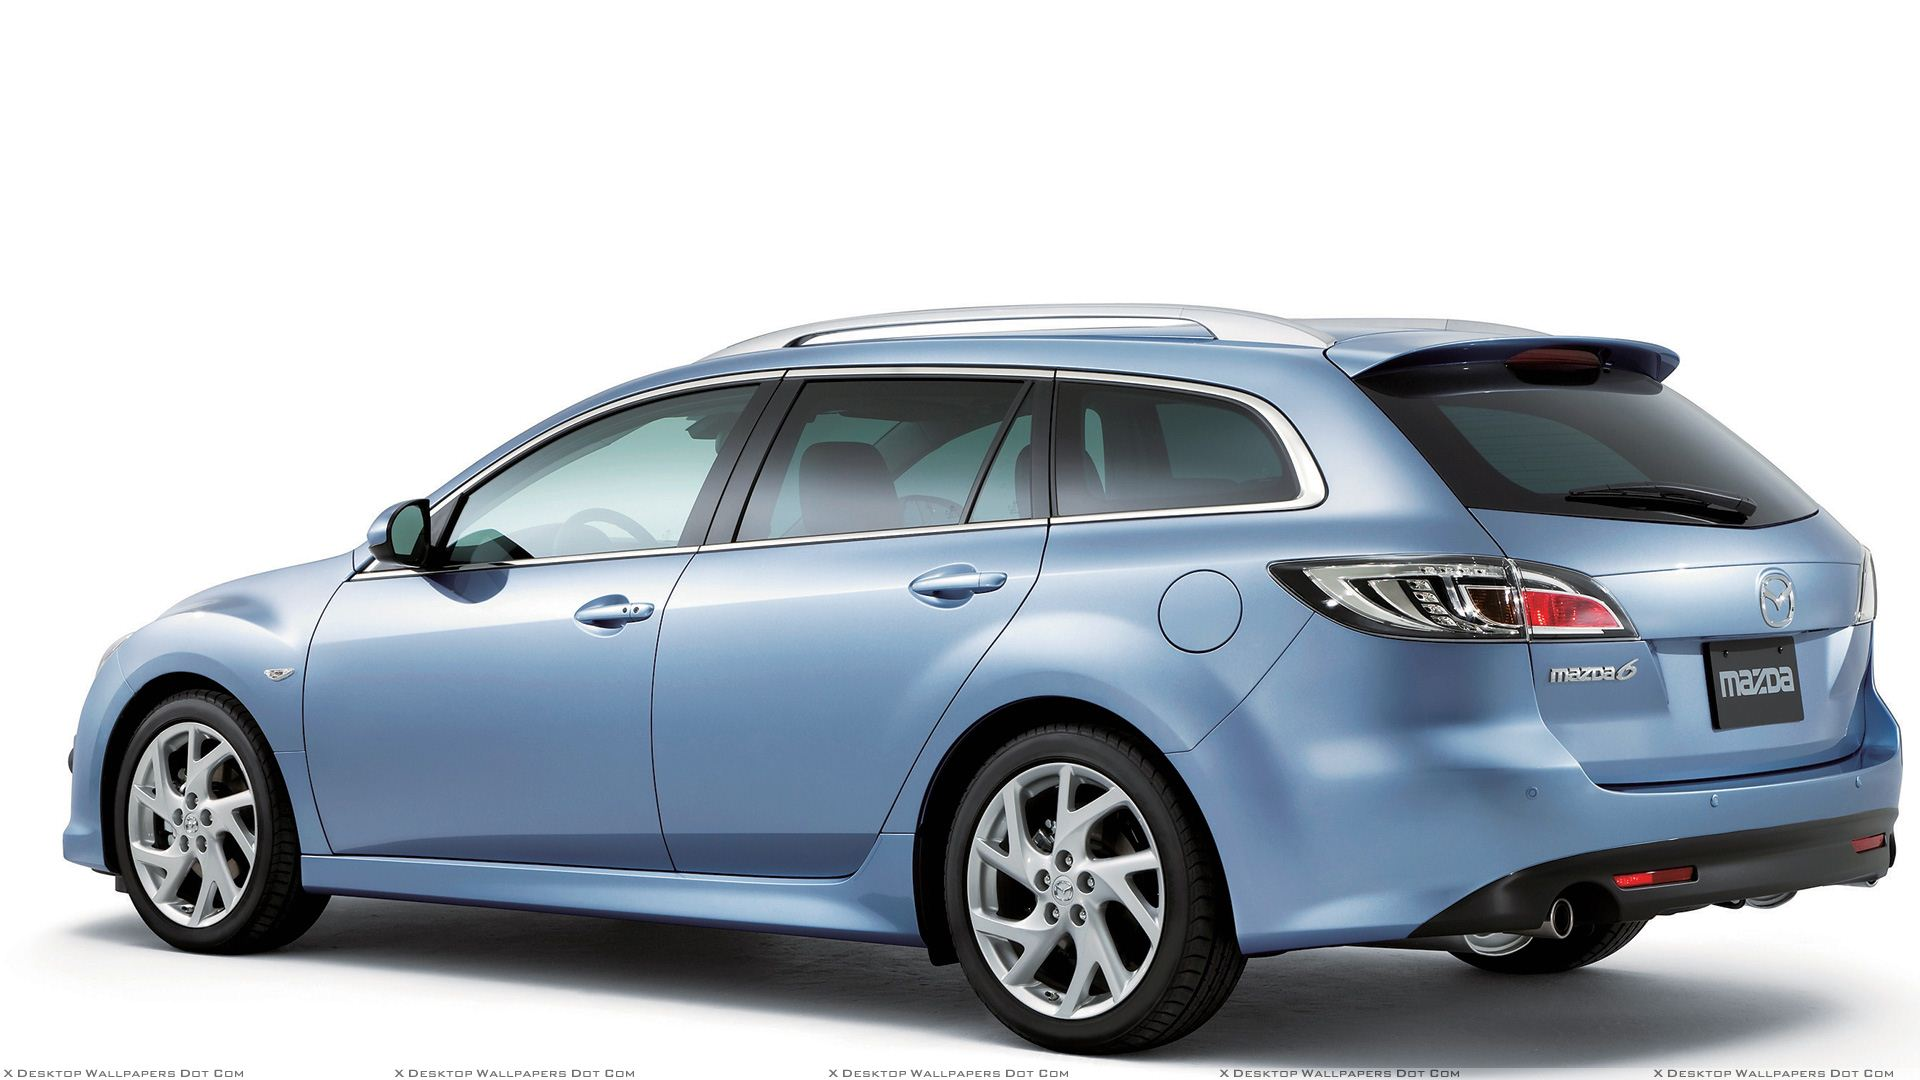 2008 Mazda 6 Wagon Side Pose In Blue Wallpaper Wiring Diagram You Are Viewing Titled